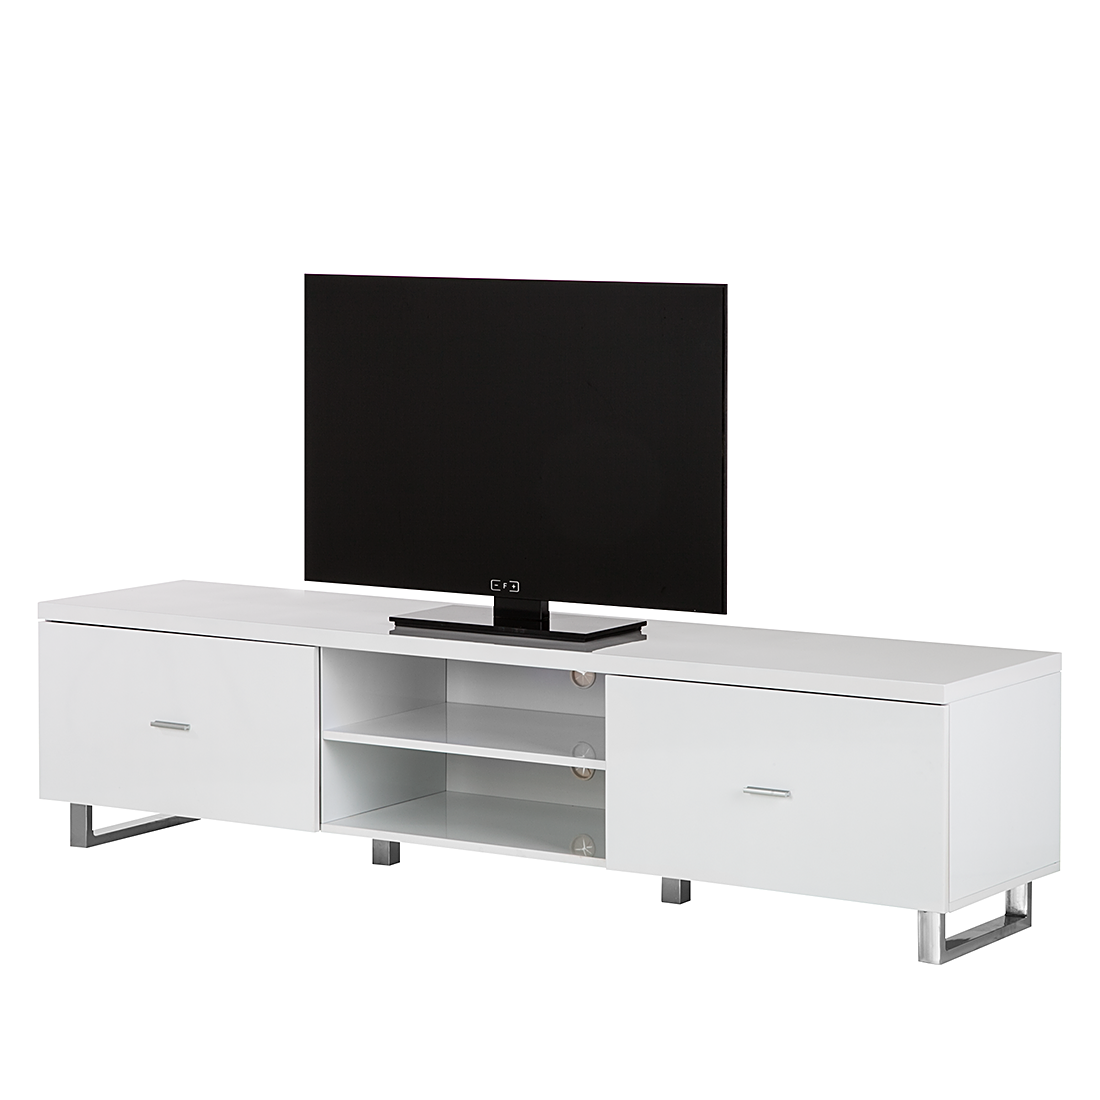 tv rack lowboard 2 schubladen glas wei chrom tv hifi rack regal fernsehtisch ebay. Black Bedroom Furniture Sets. Home Design Ideas